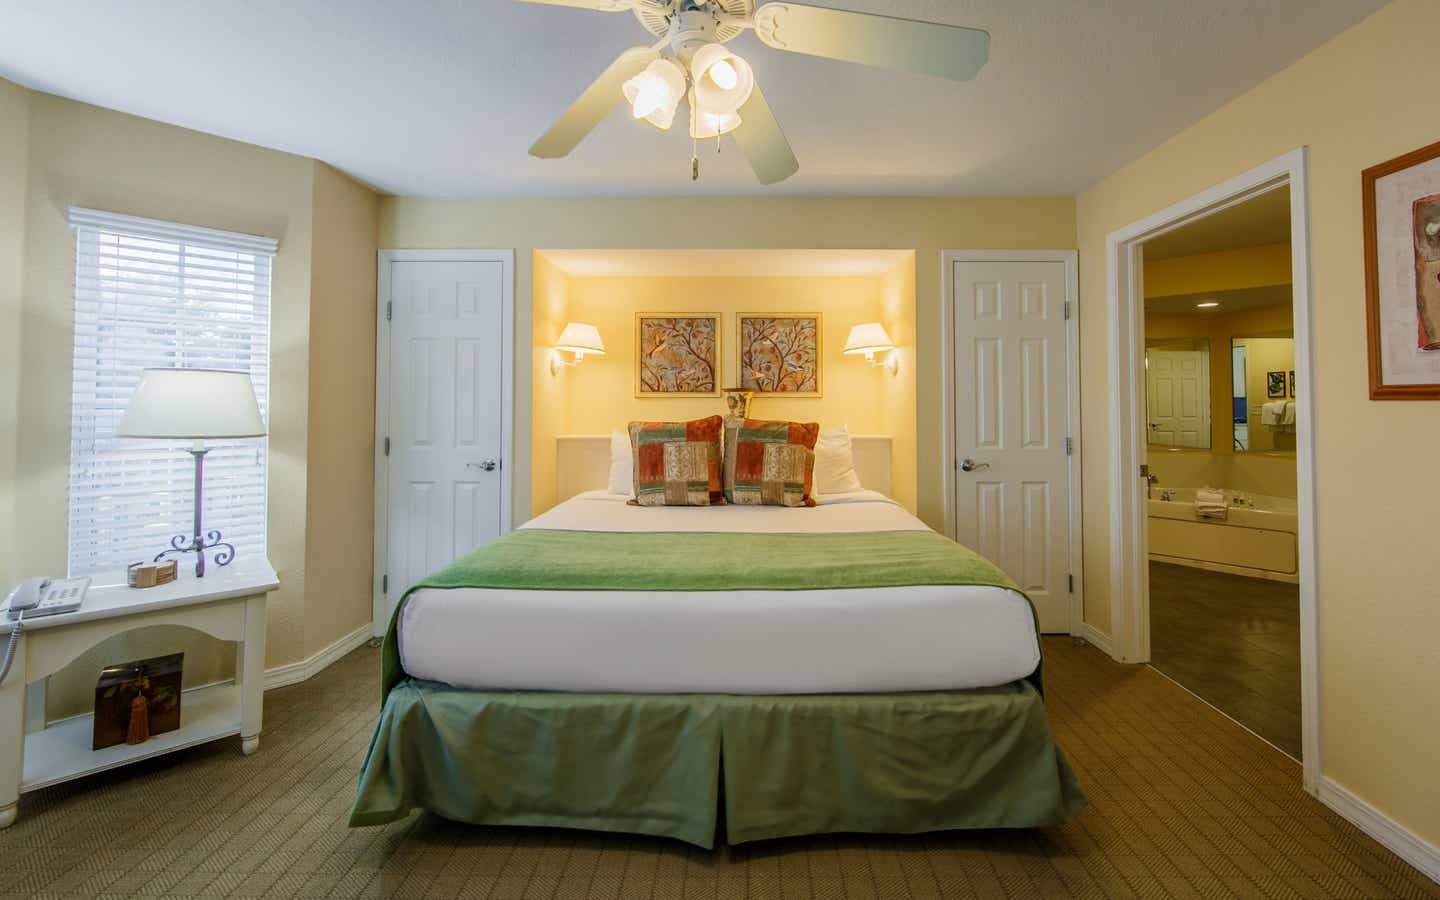 Bedroom with two closets in a two-bedroom presidential villa at the Hill Country Resort in Canyon Lake, Texas.